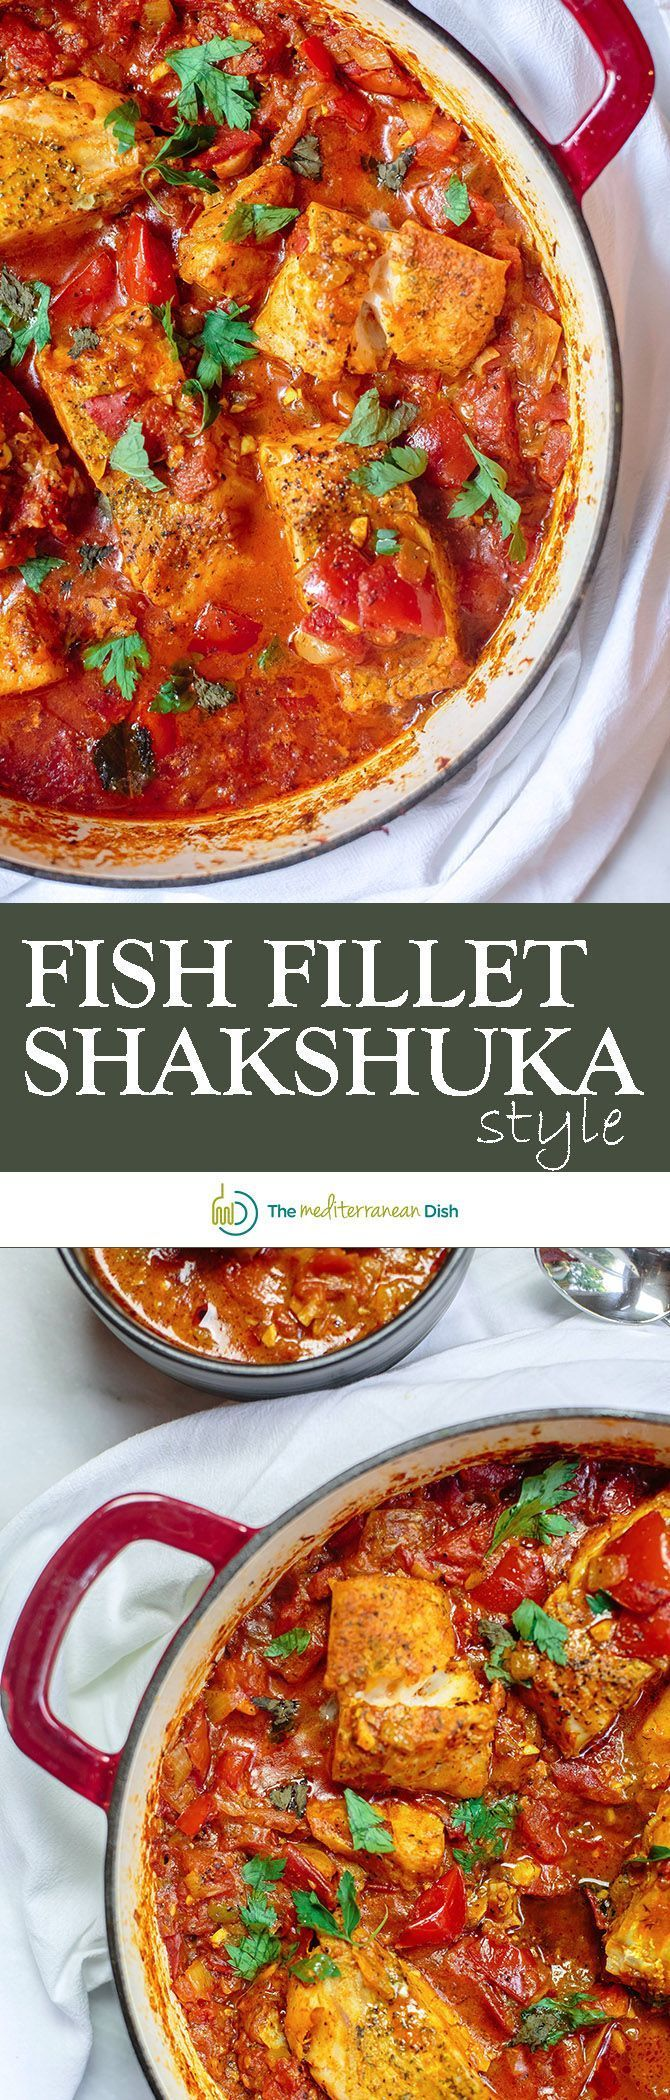 Mediterranean Fish Fillet Recipe Shakshuka Style | The Mediterranean Dish. A quick one-skillet cod fish fillet, flavored with Mediterranean spices and cooked in a bed of tomato sauce with onions, garlic and spicy Jalapeno peppers. Comes together in 30 min